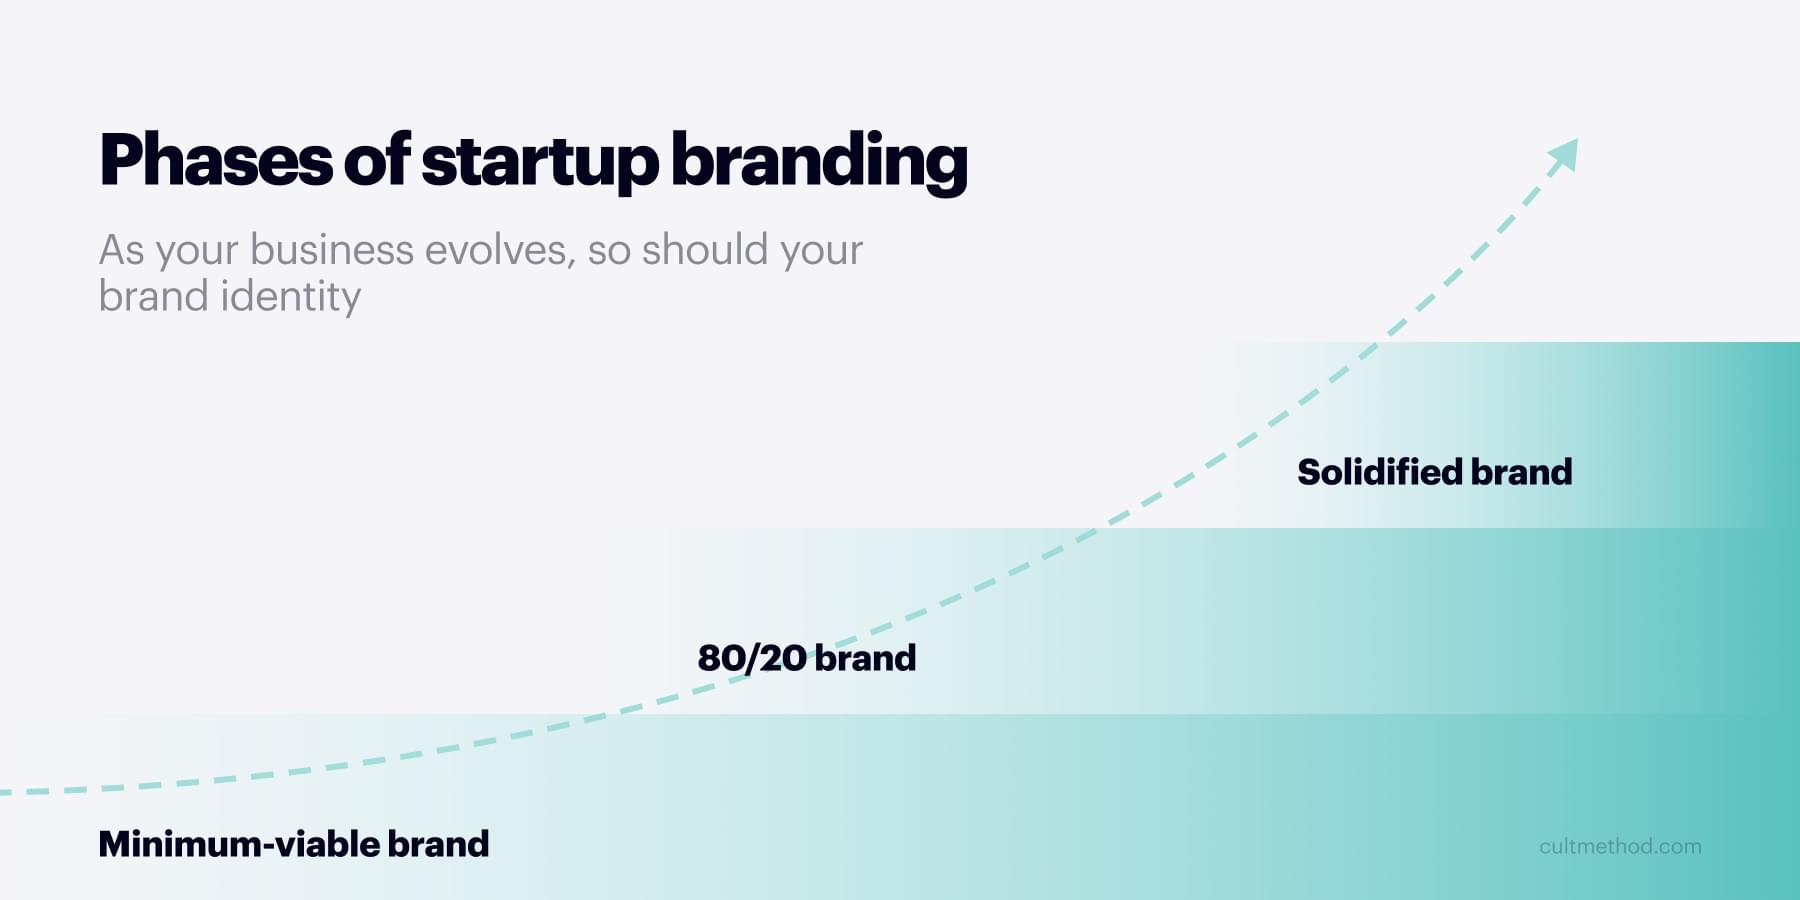 Brand maturation ladder: the three stages of startup branding